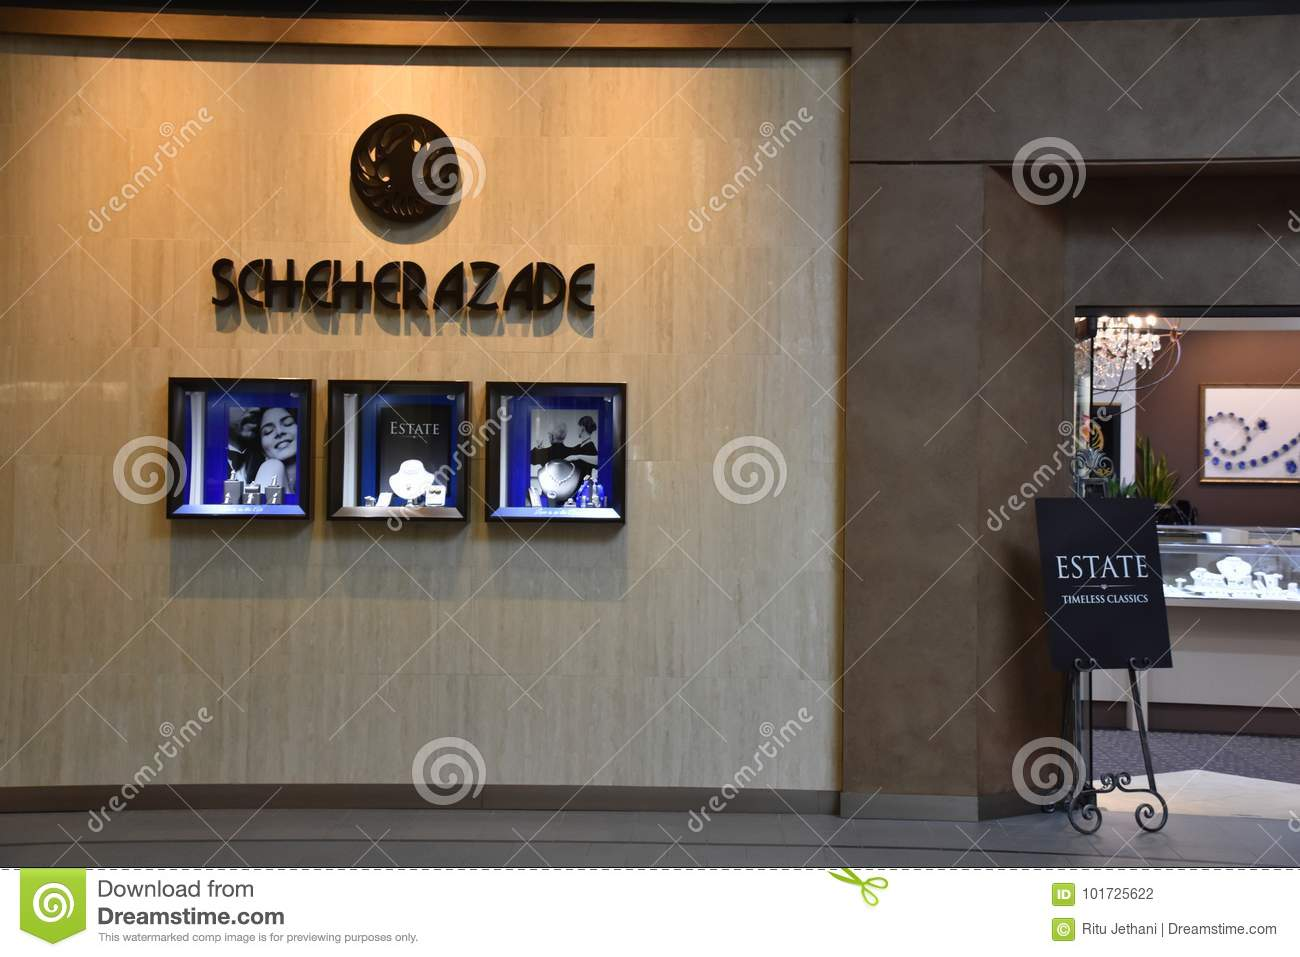 Scheherazade store at the Galleria in Edina, Minnesota